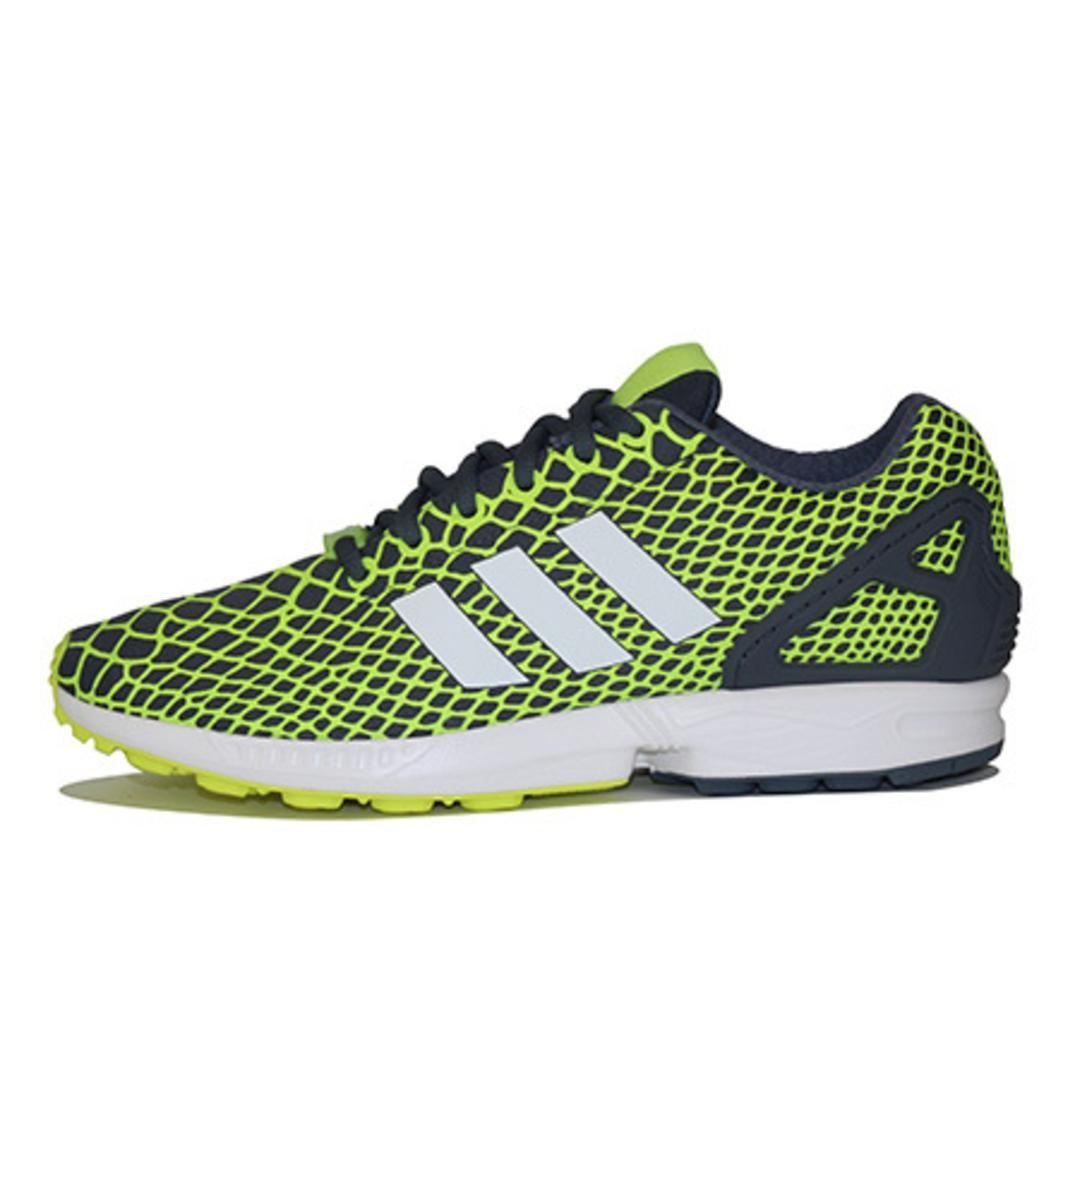 5567ef393d827 Lyst - Adidas Zx Flux Techfit Sneakers in Yellow for Men